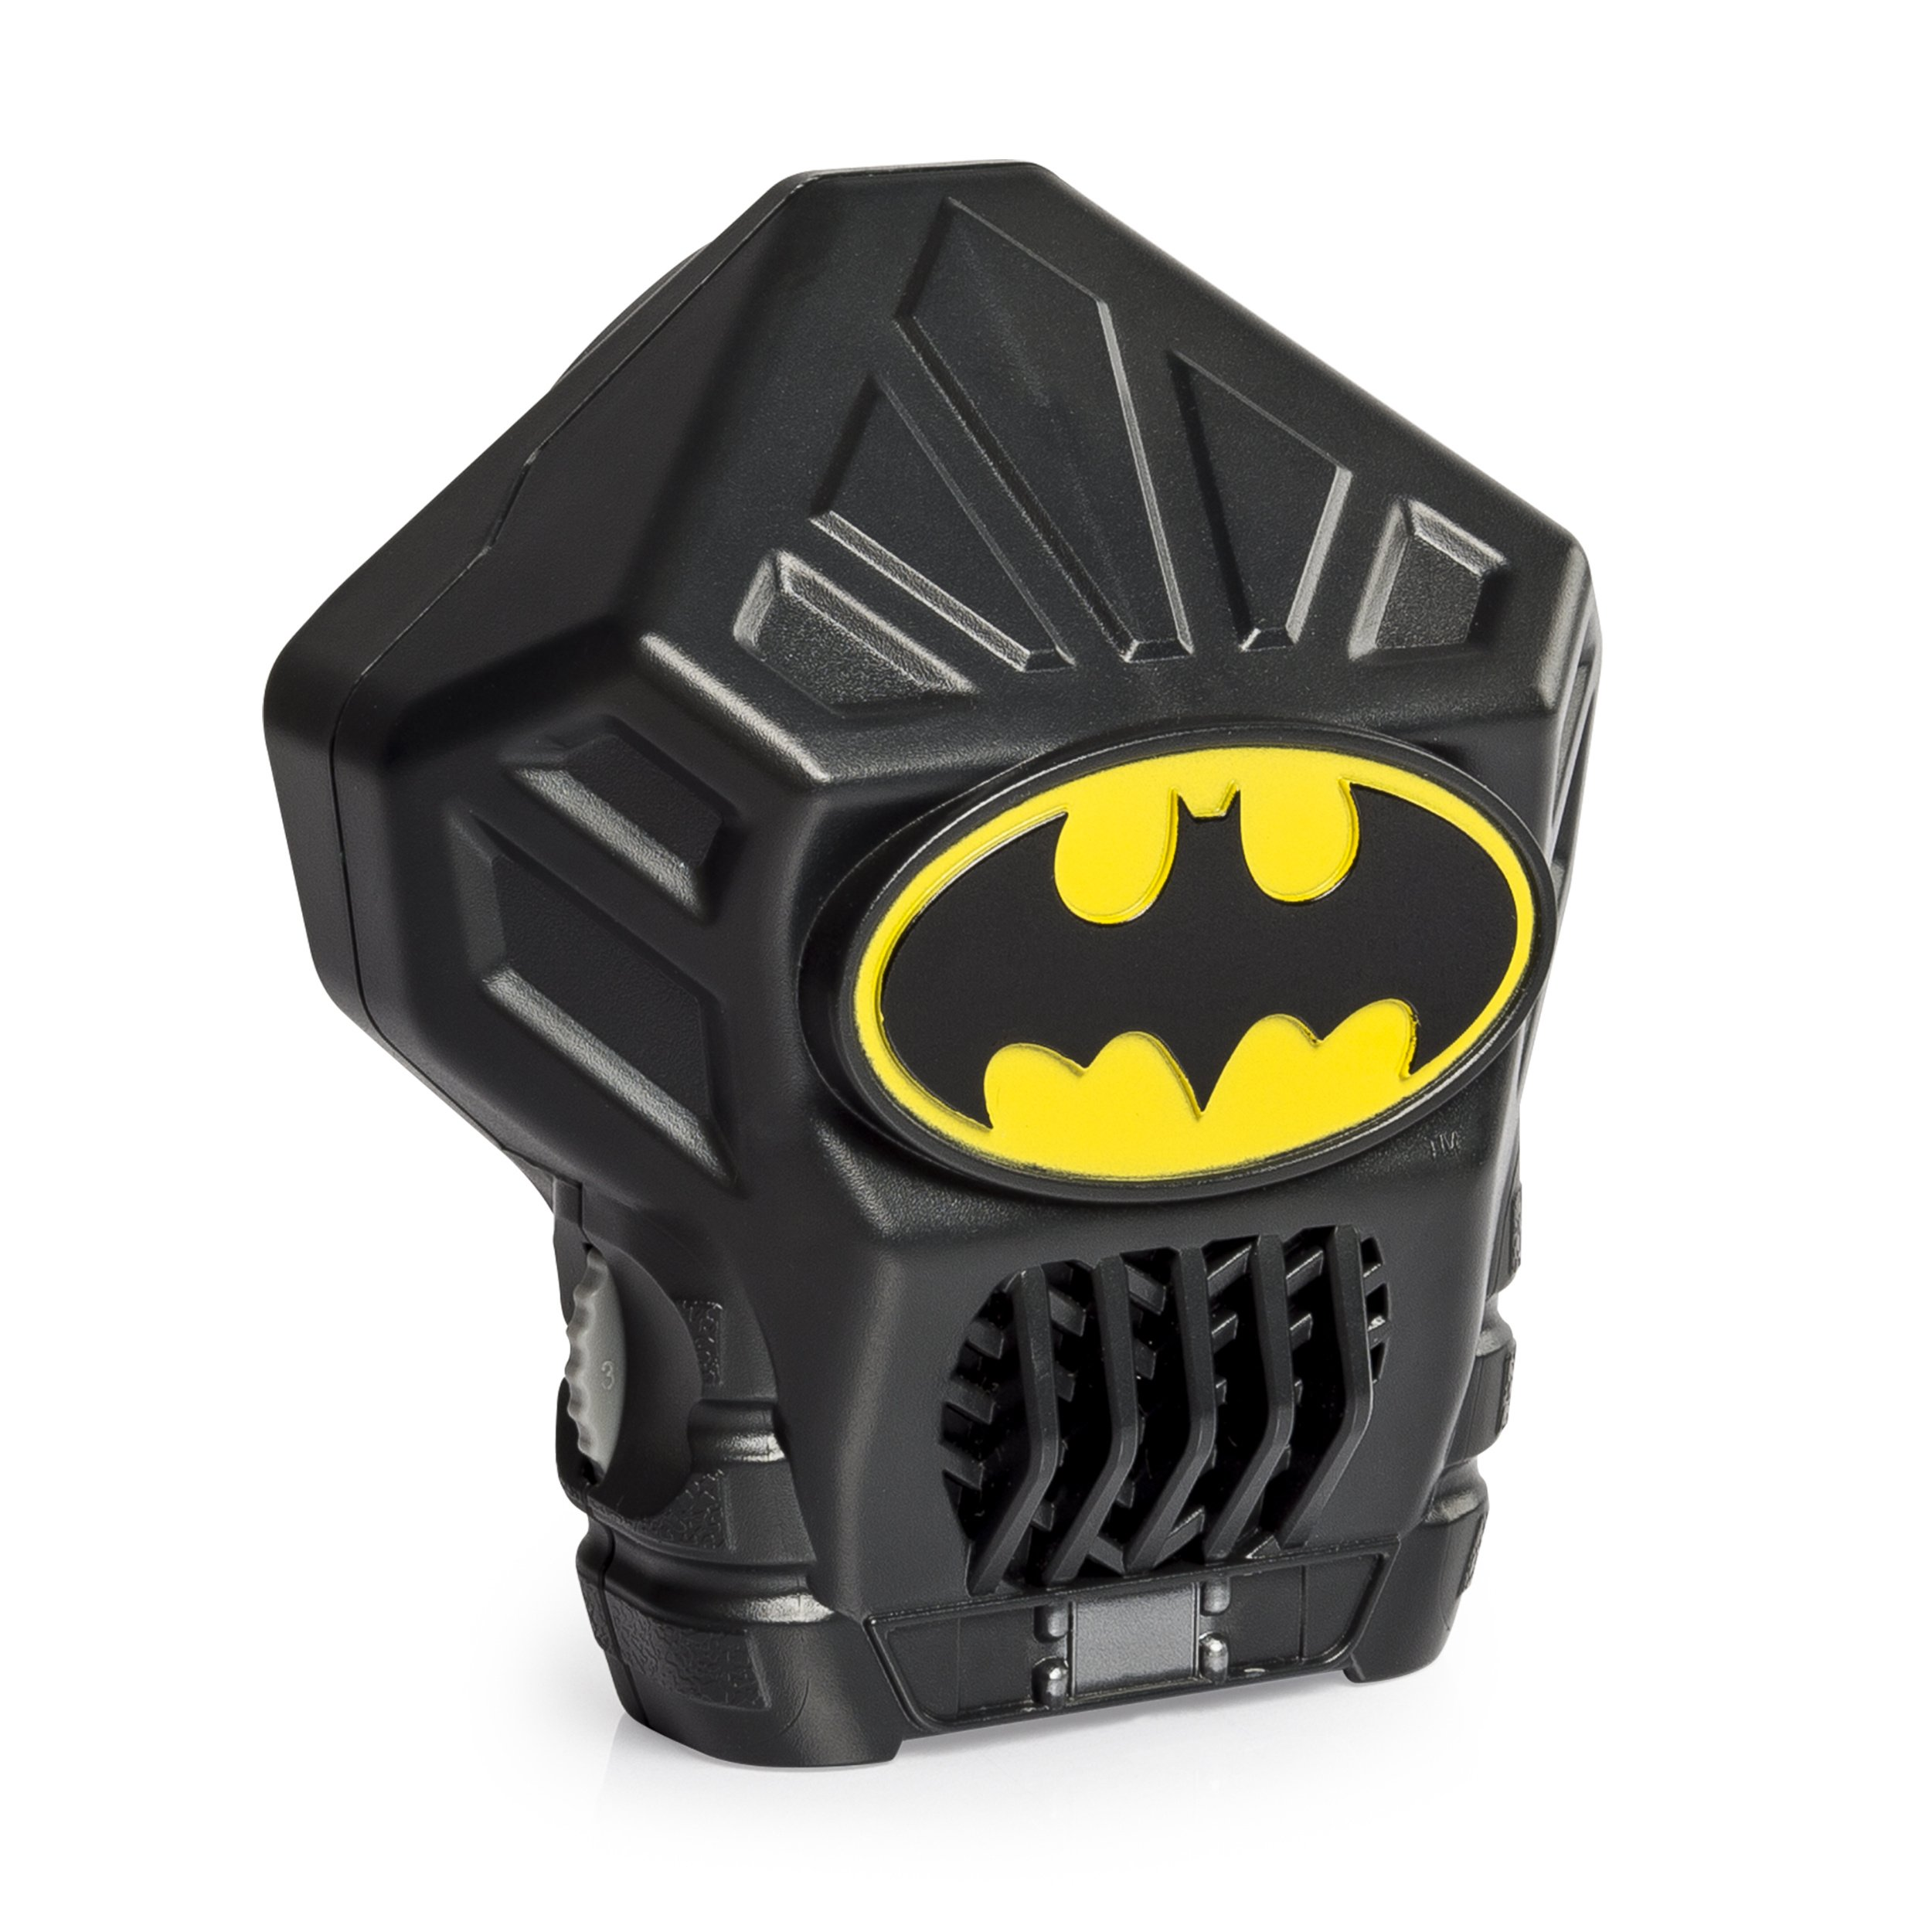 Spy Gear (6027055) Batman Voice Changer